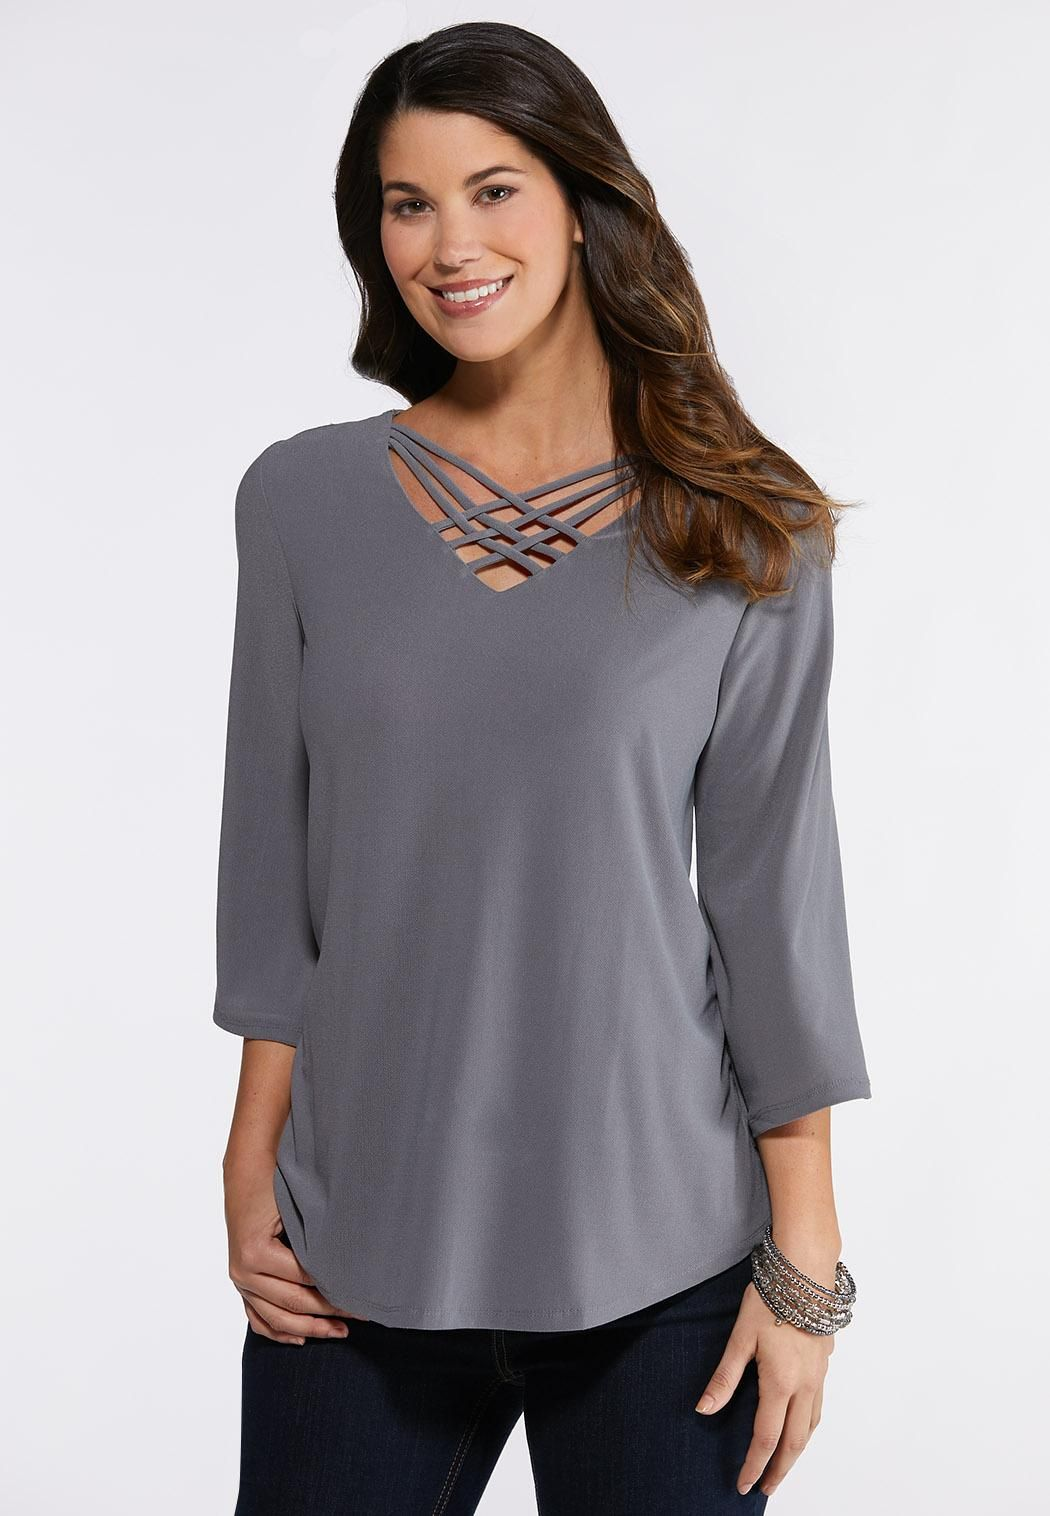 87bfb201135 Lattice V- Neck Top Tees   Amp   Knit Tops Cato Fashions in 2019 ...